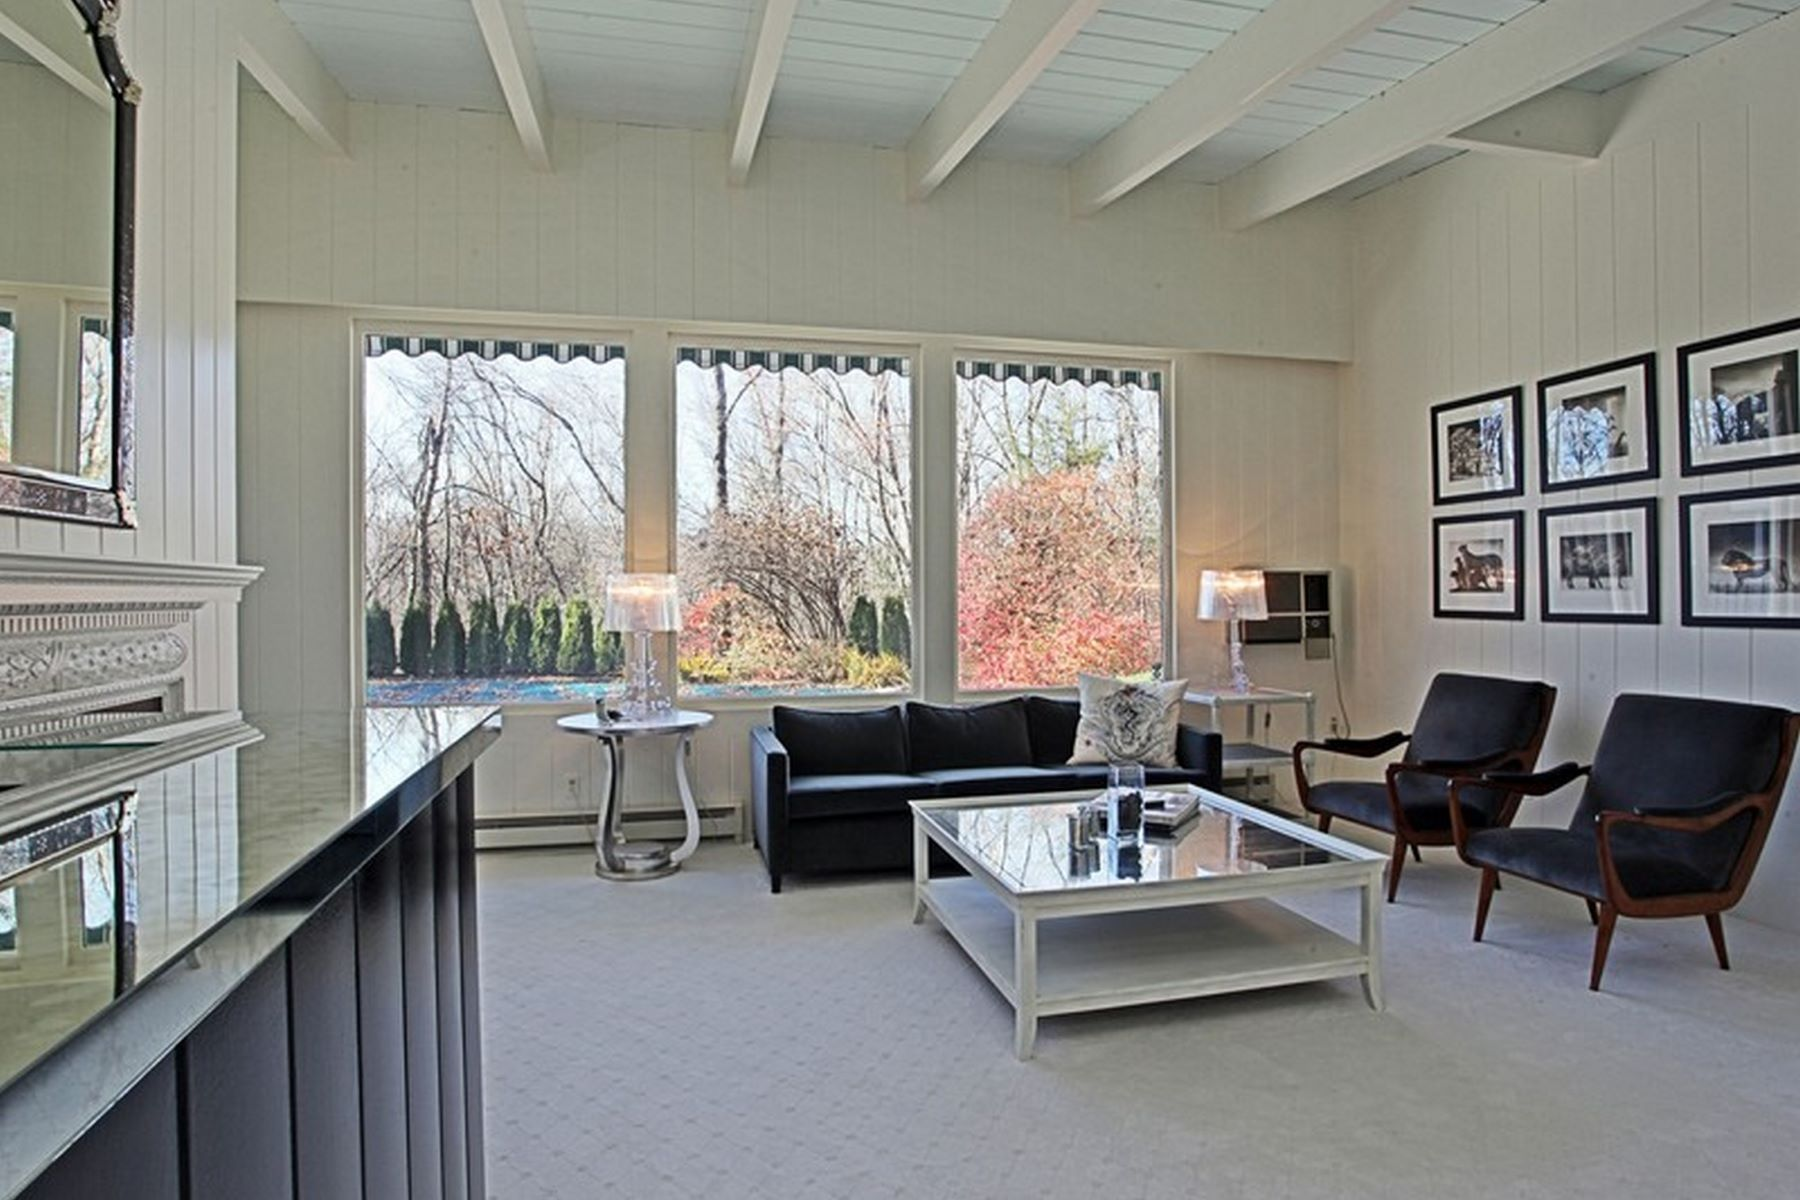 Additional photo for property listing at Sleek Mid-Century Modern 116 Wellers Bridge Road Roxbury, Connecticut 06783 United States